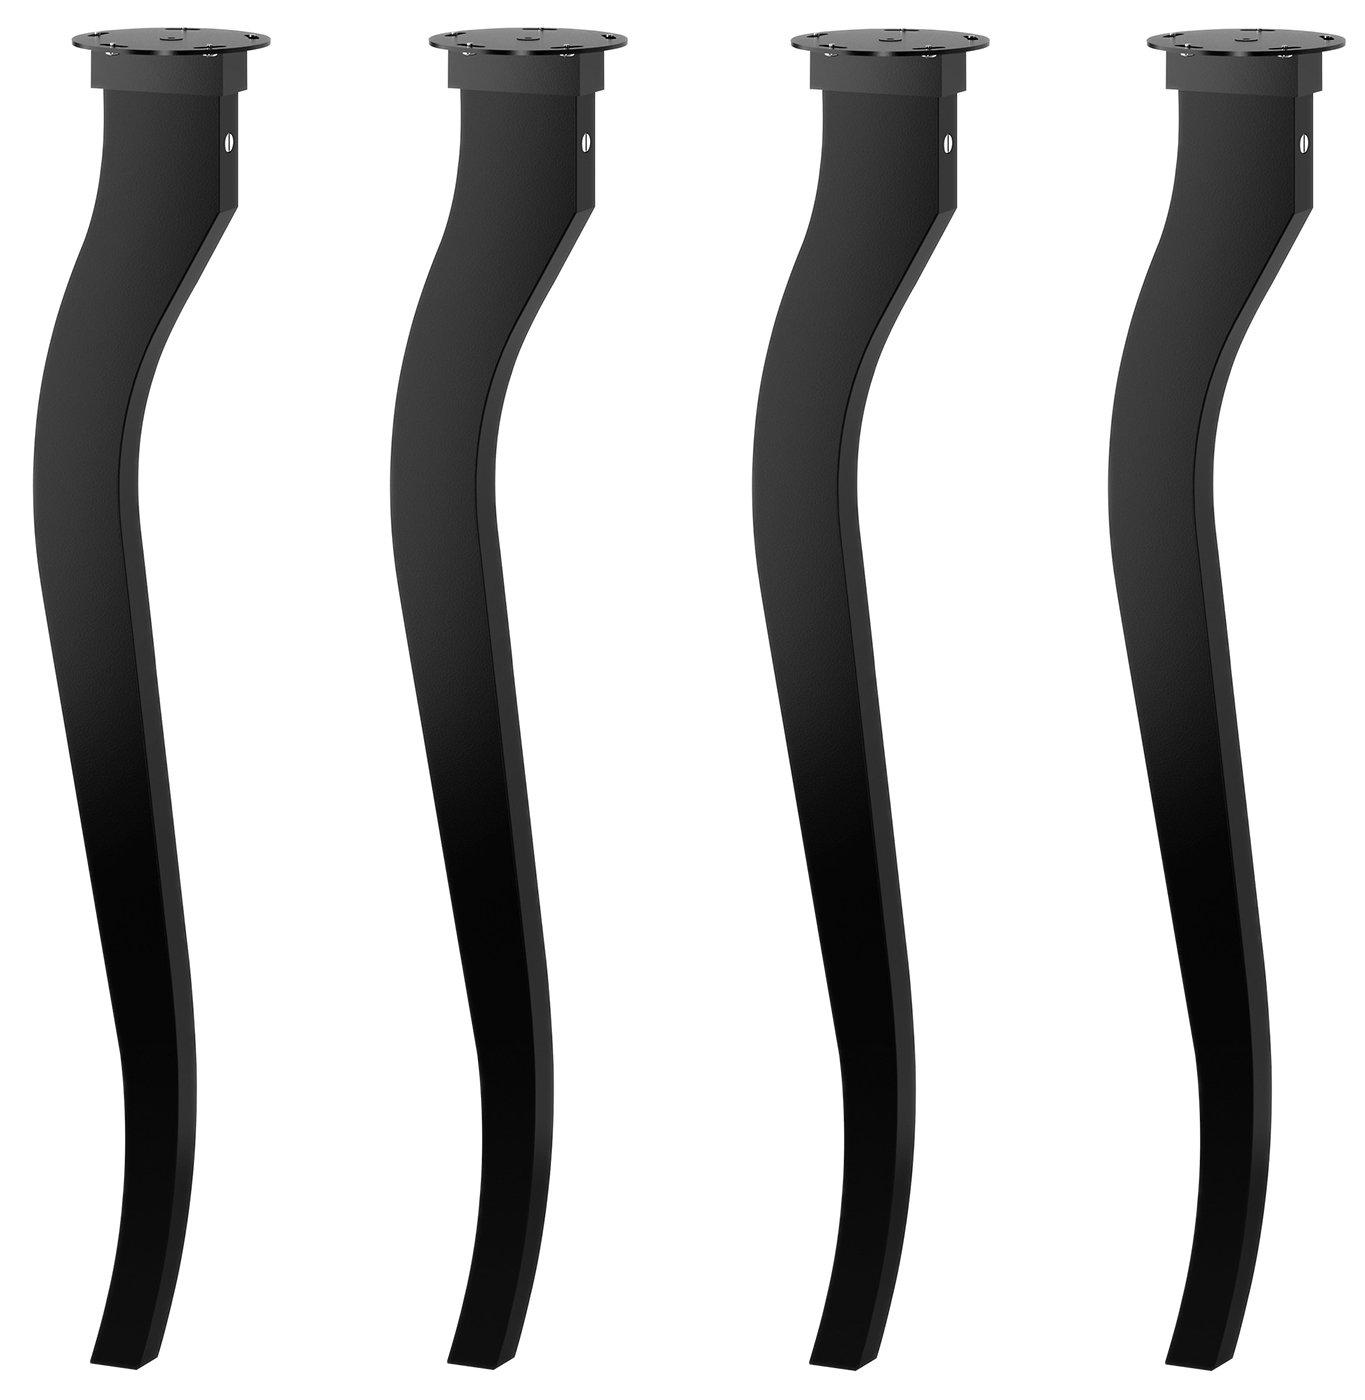 IKEA Lalle Solid Wood Table Legs - 27.5'' Tall - Black - Perfect Desk Legs For Home, Work, School, Office - Set of 4